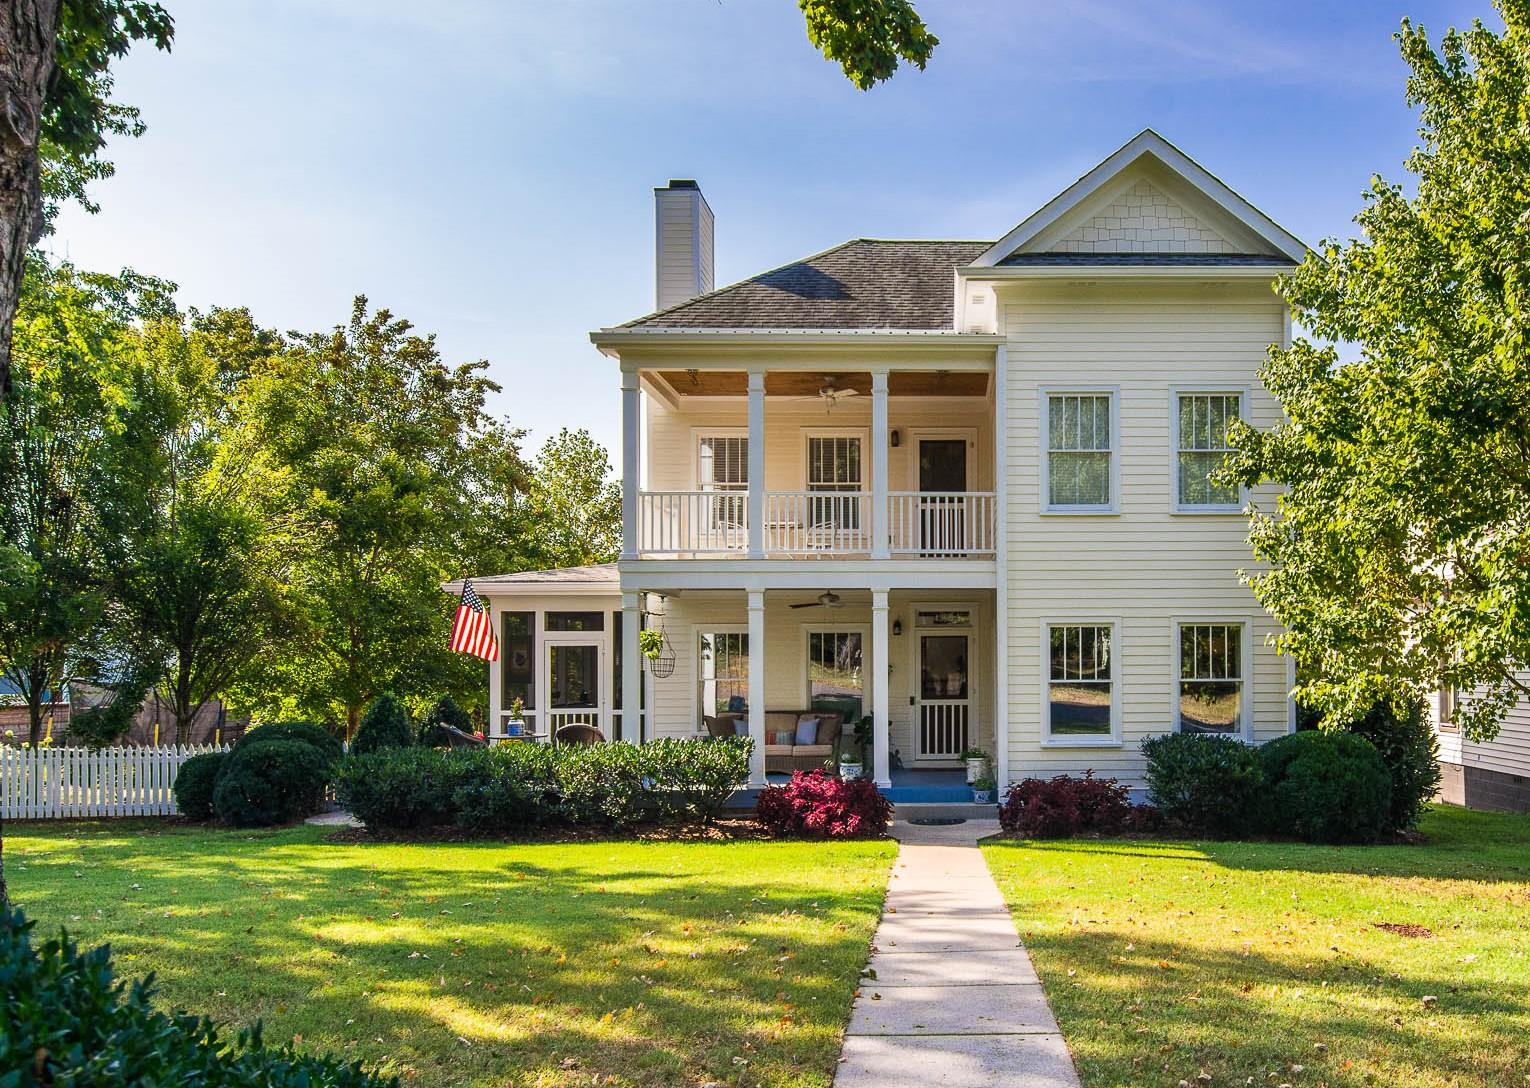 4303 Nevada Ave, Nashville, TN 37209 - Nashville, TN real estate listing